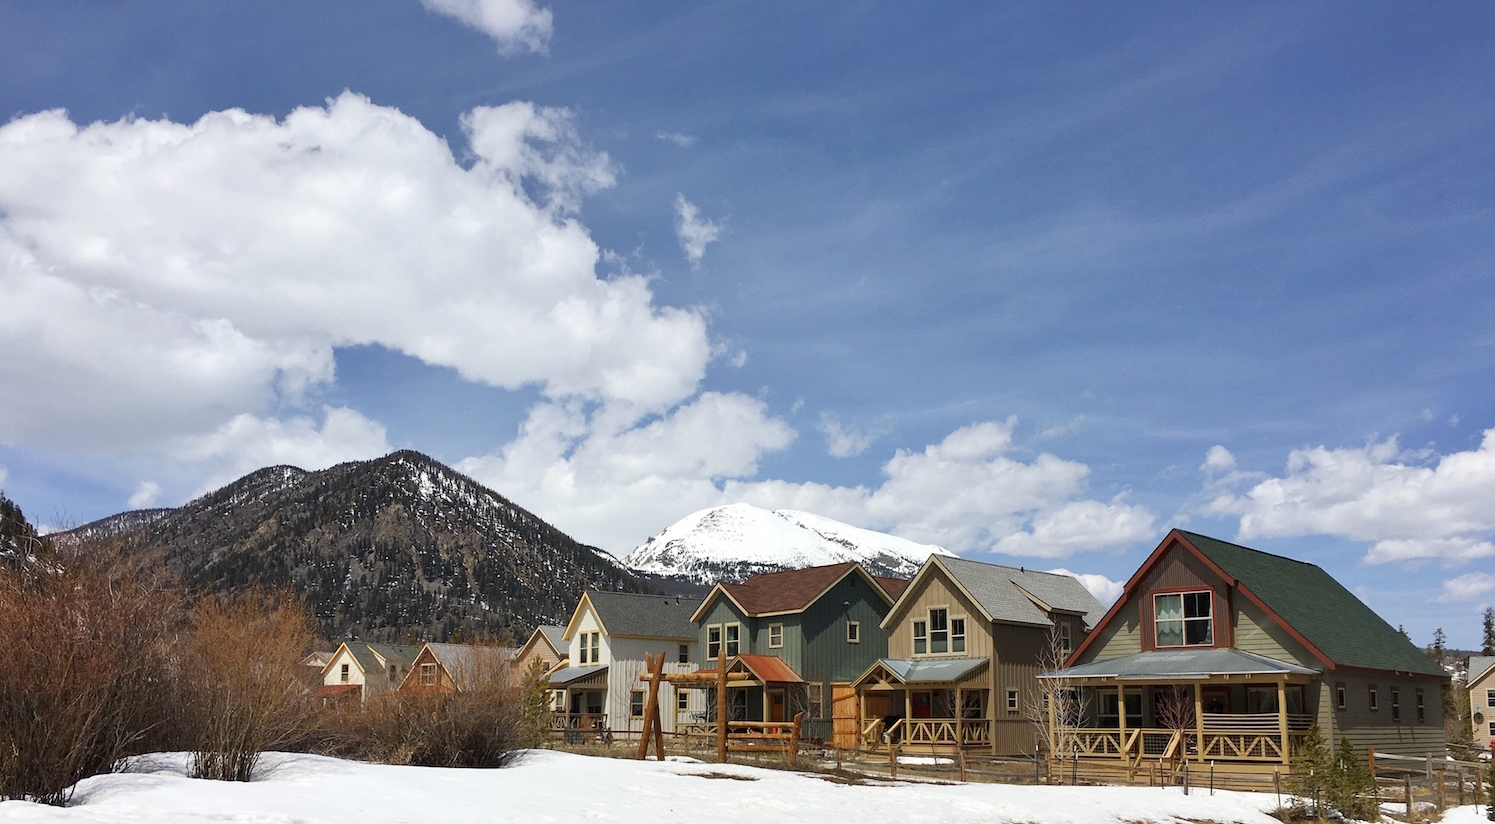 We stayed in Frisco, Colorado for 2 months.